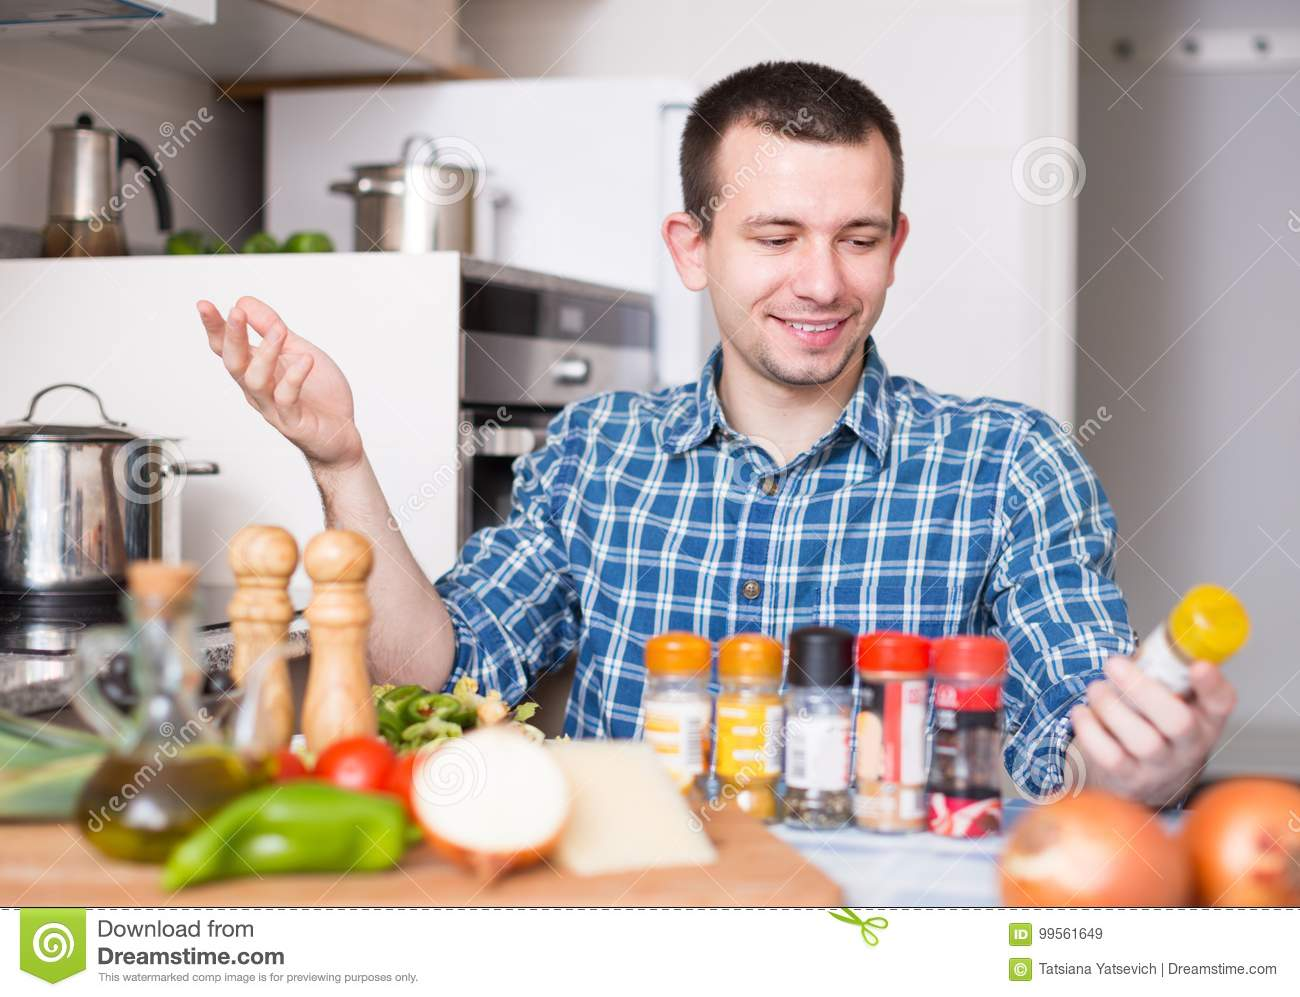 Normal Guy Chooses Spices In The Kitchen At Home Stock Image - Image ...